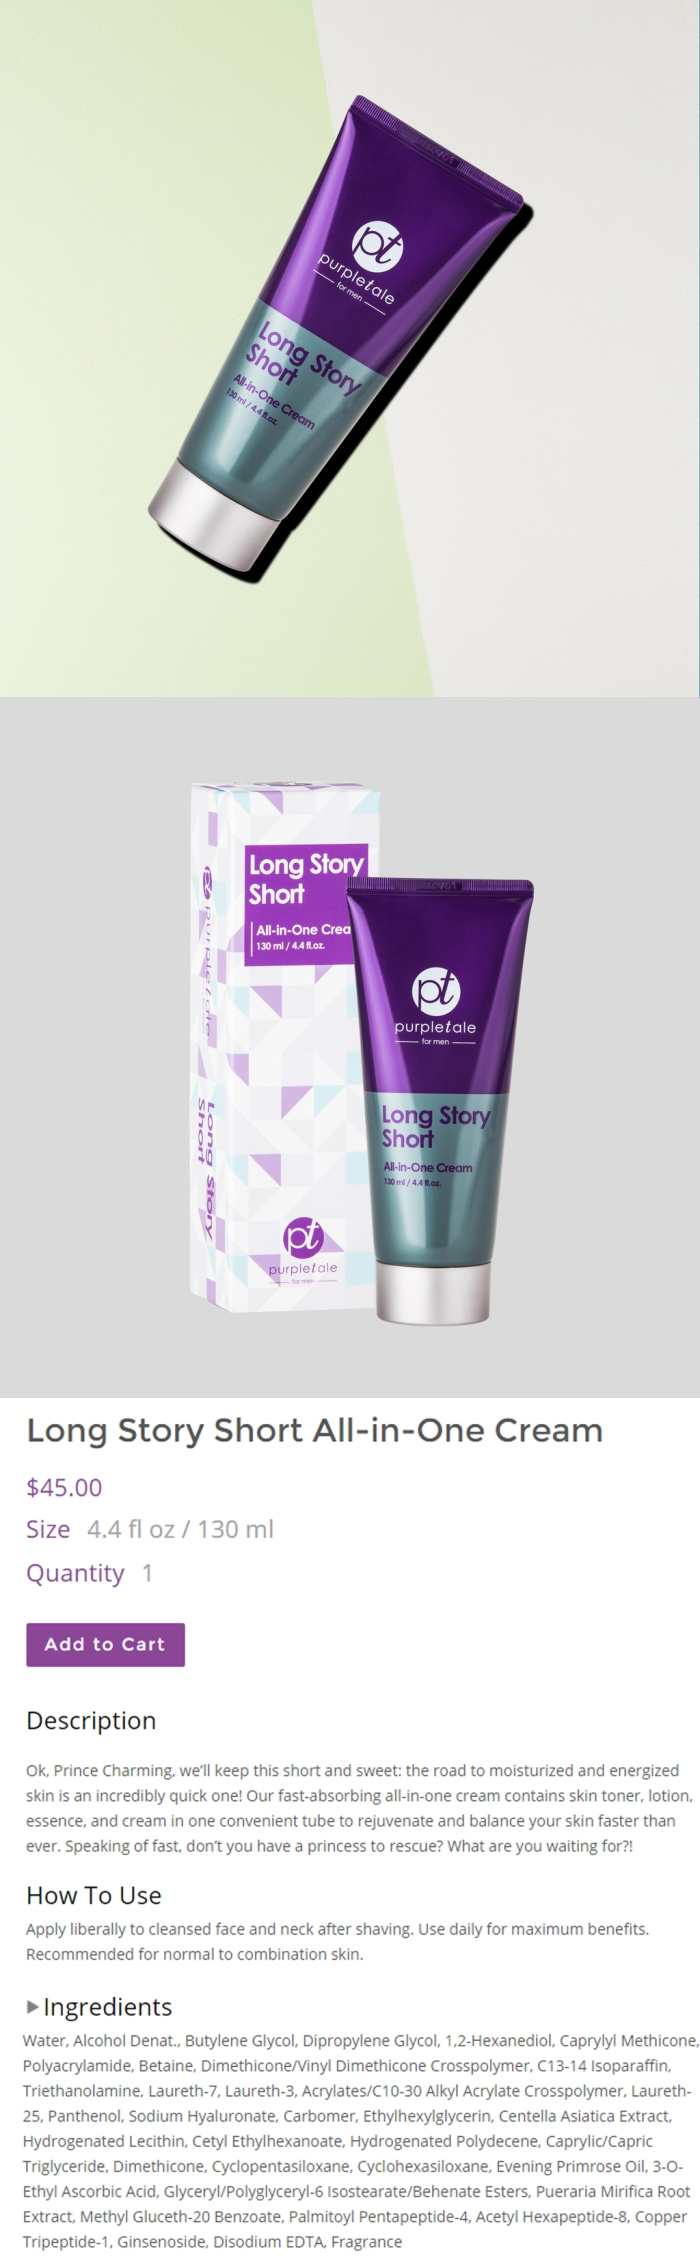 PurpleTale Long Story Short All-in-One Cream (Product info)